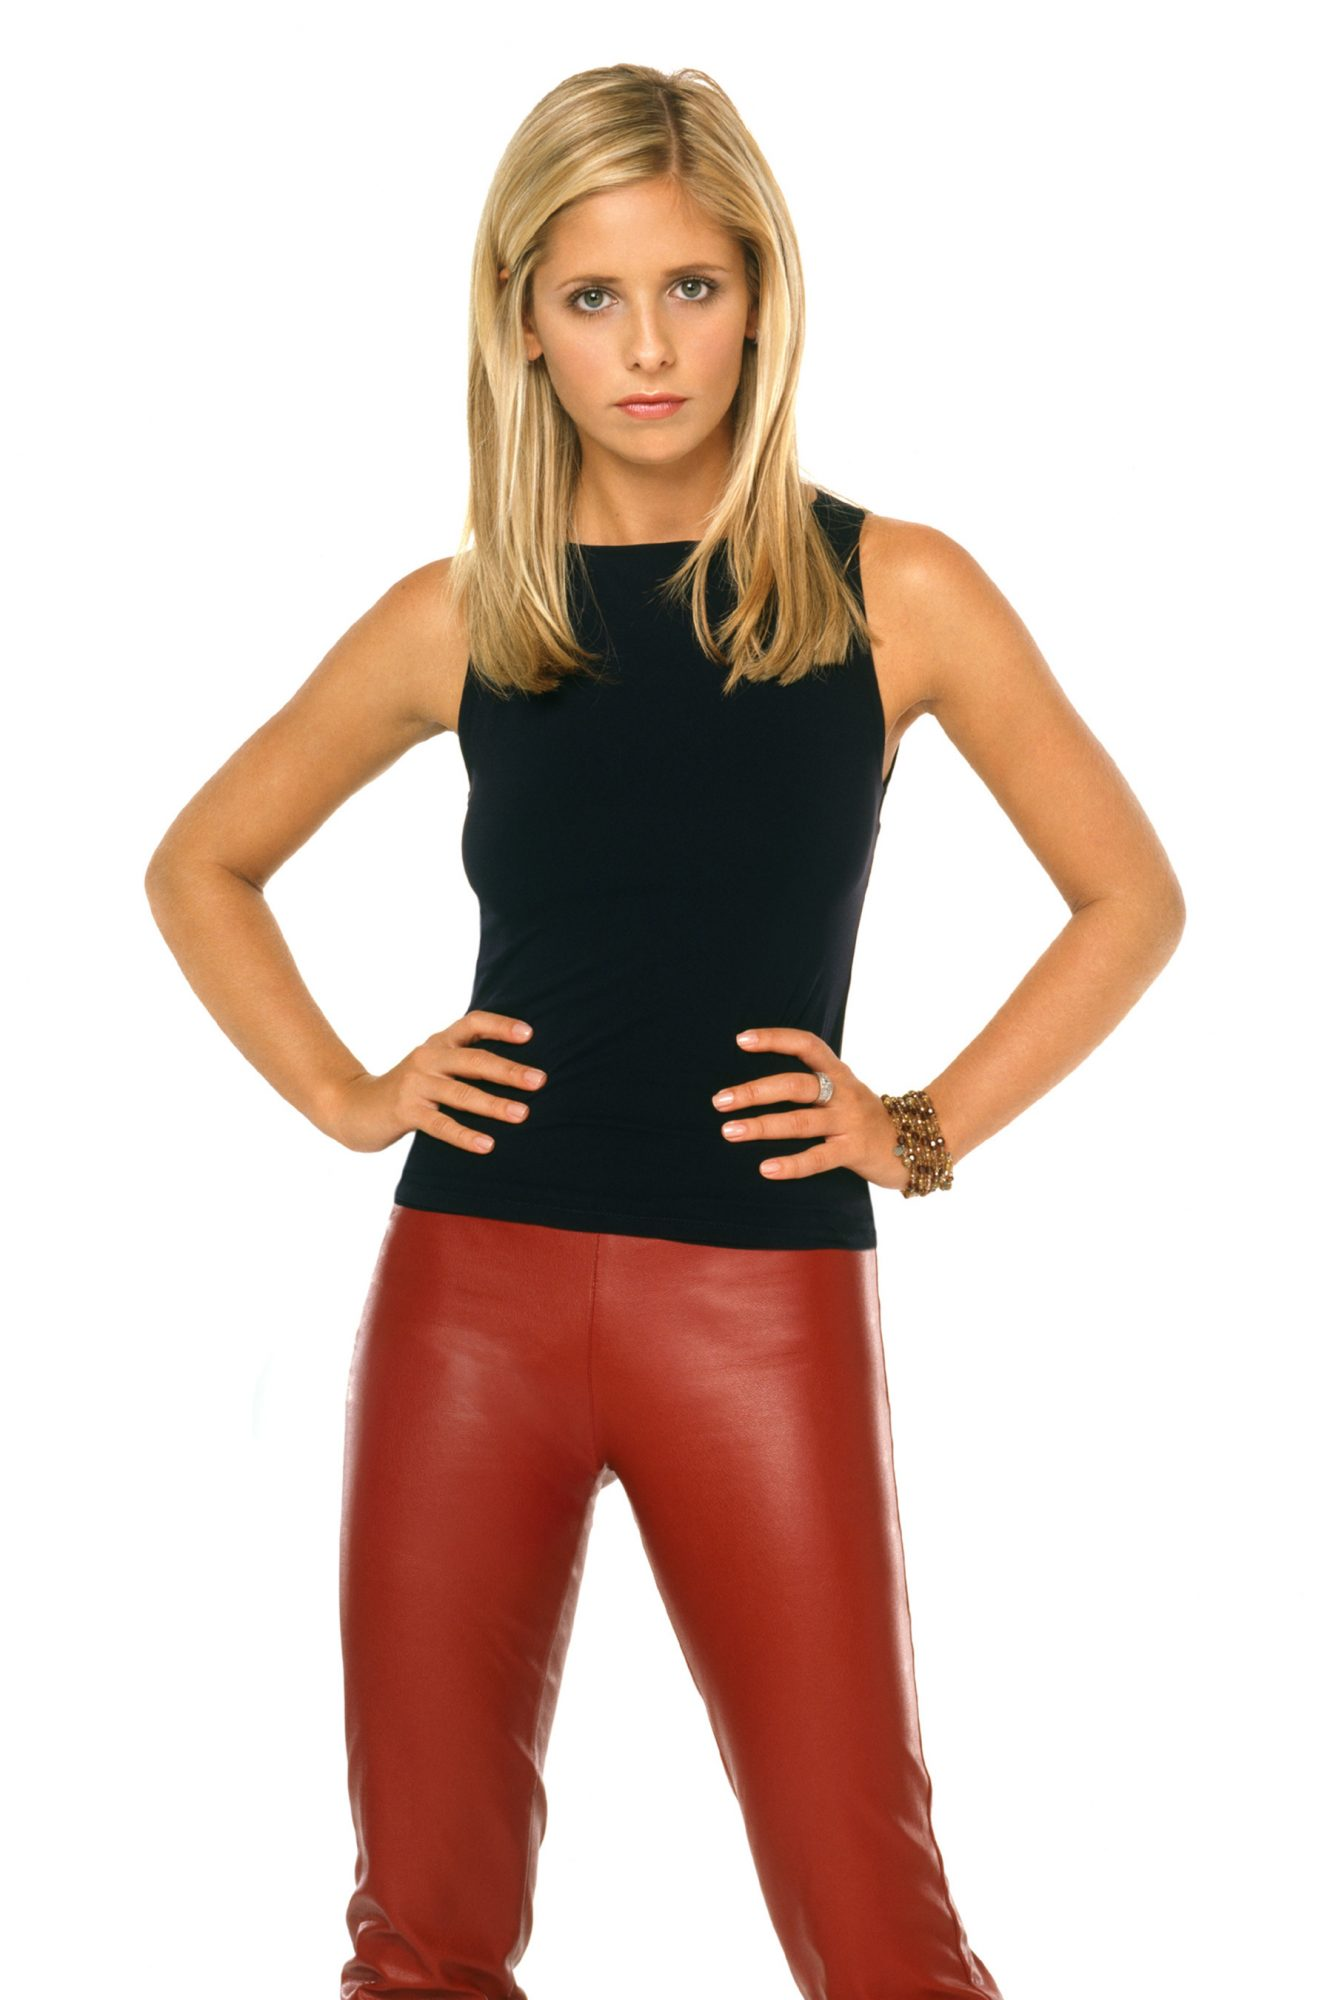 Buffy the Vampire SlayerSarah Michelle Gellar